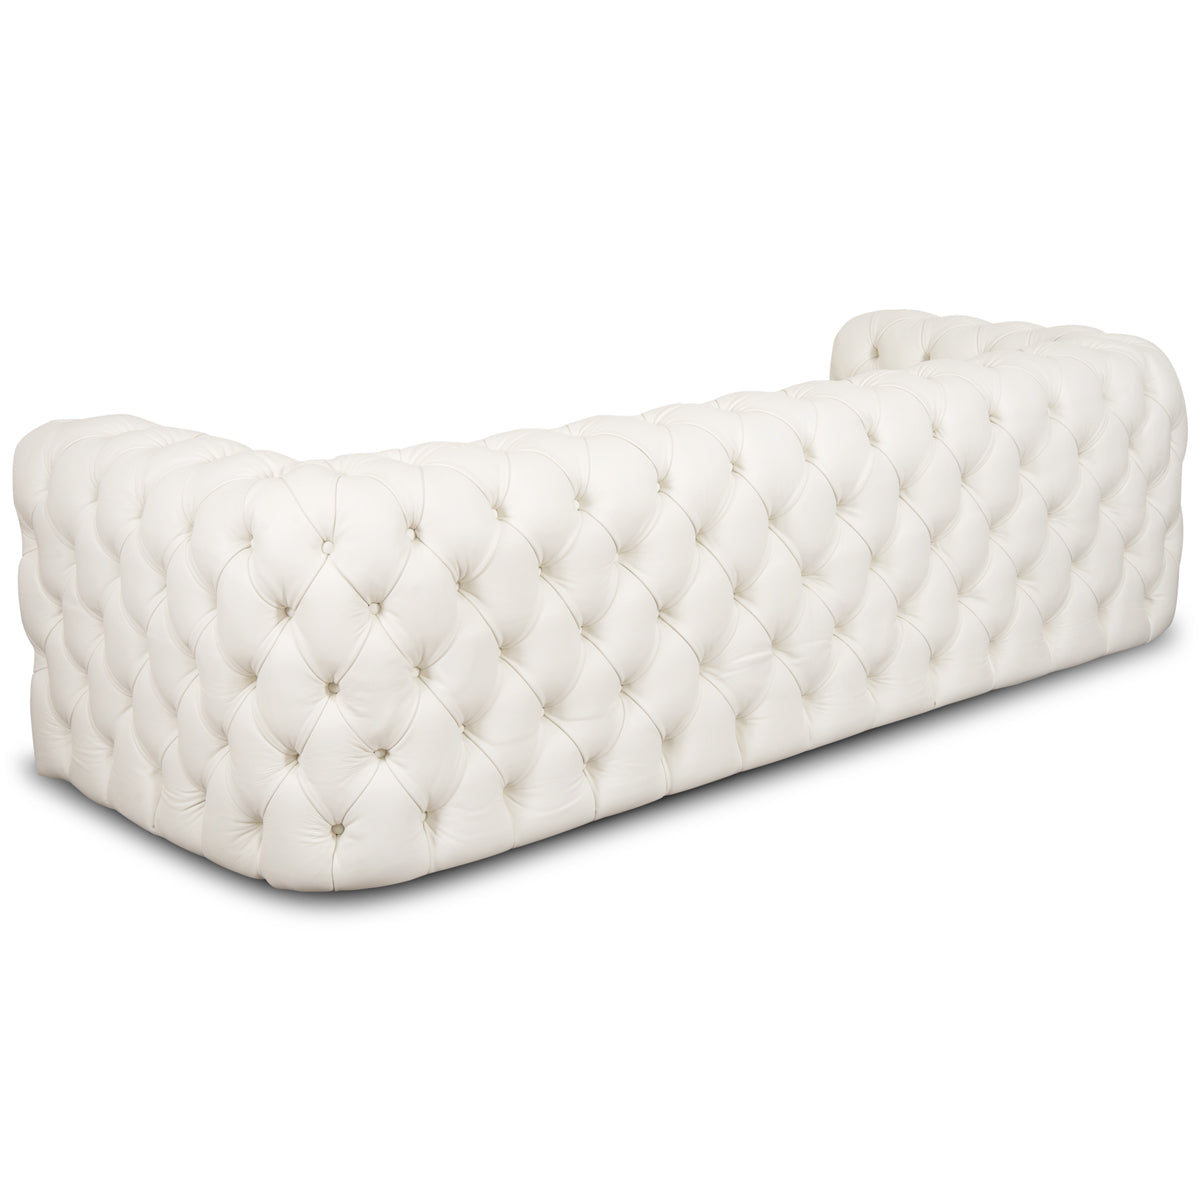 Palm Beach Sofa in White Leather - ModShop1.com